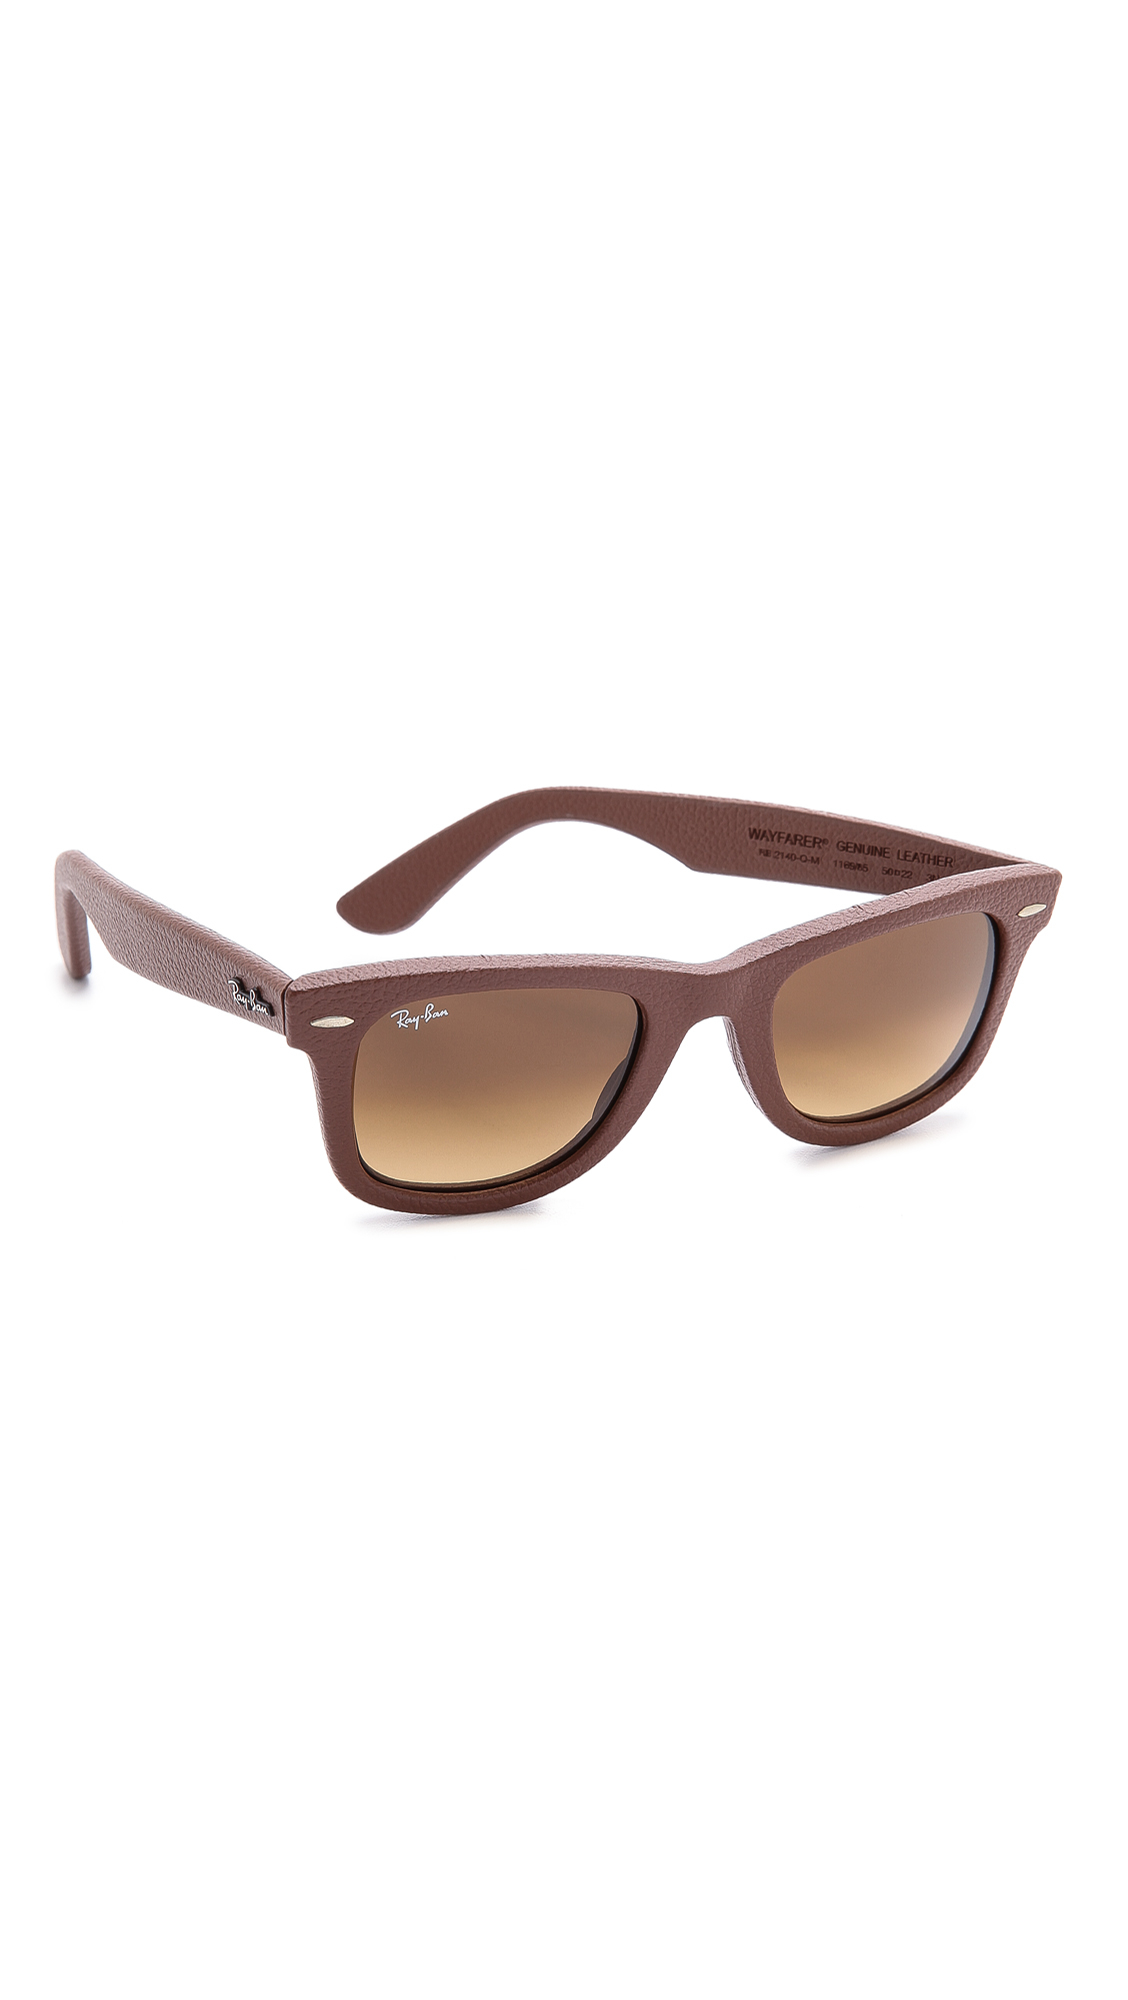 1849567916a Lyst - Ray-Ban Leather Wrapped Wayfarer Sunglasses in Brown for Men